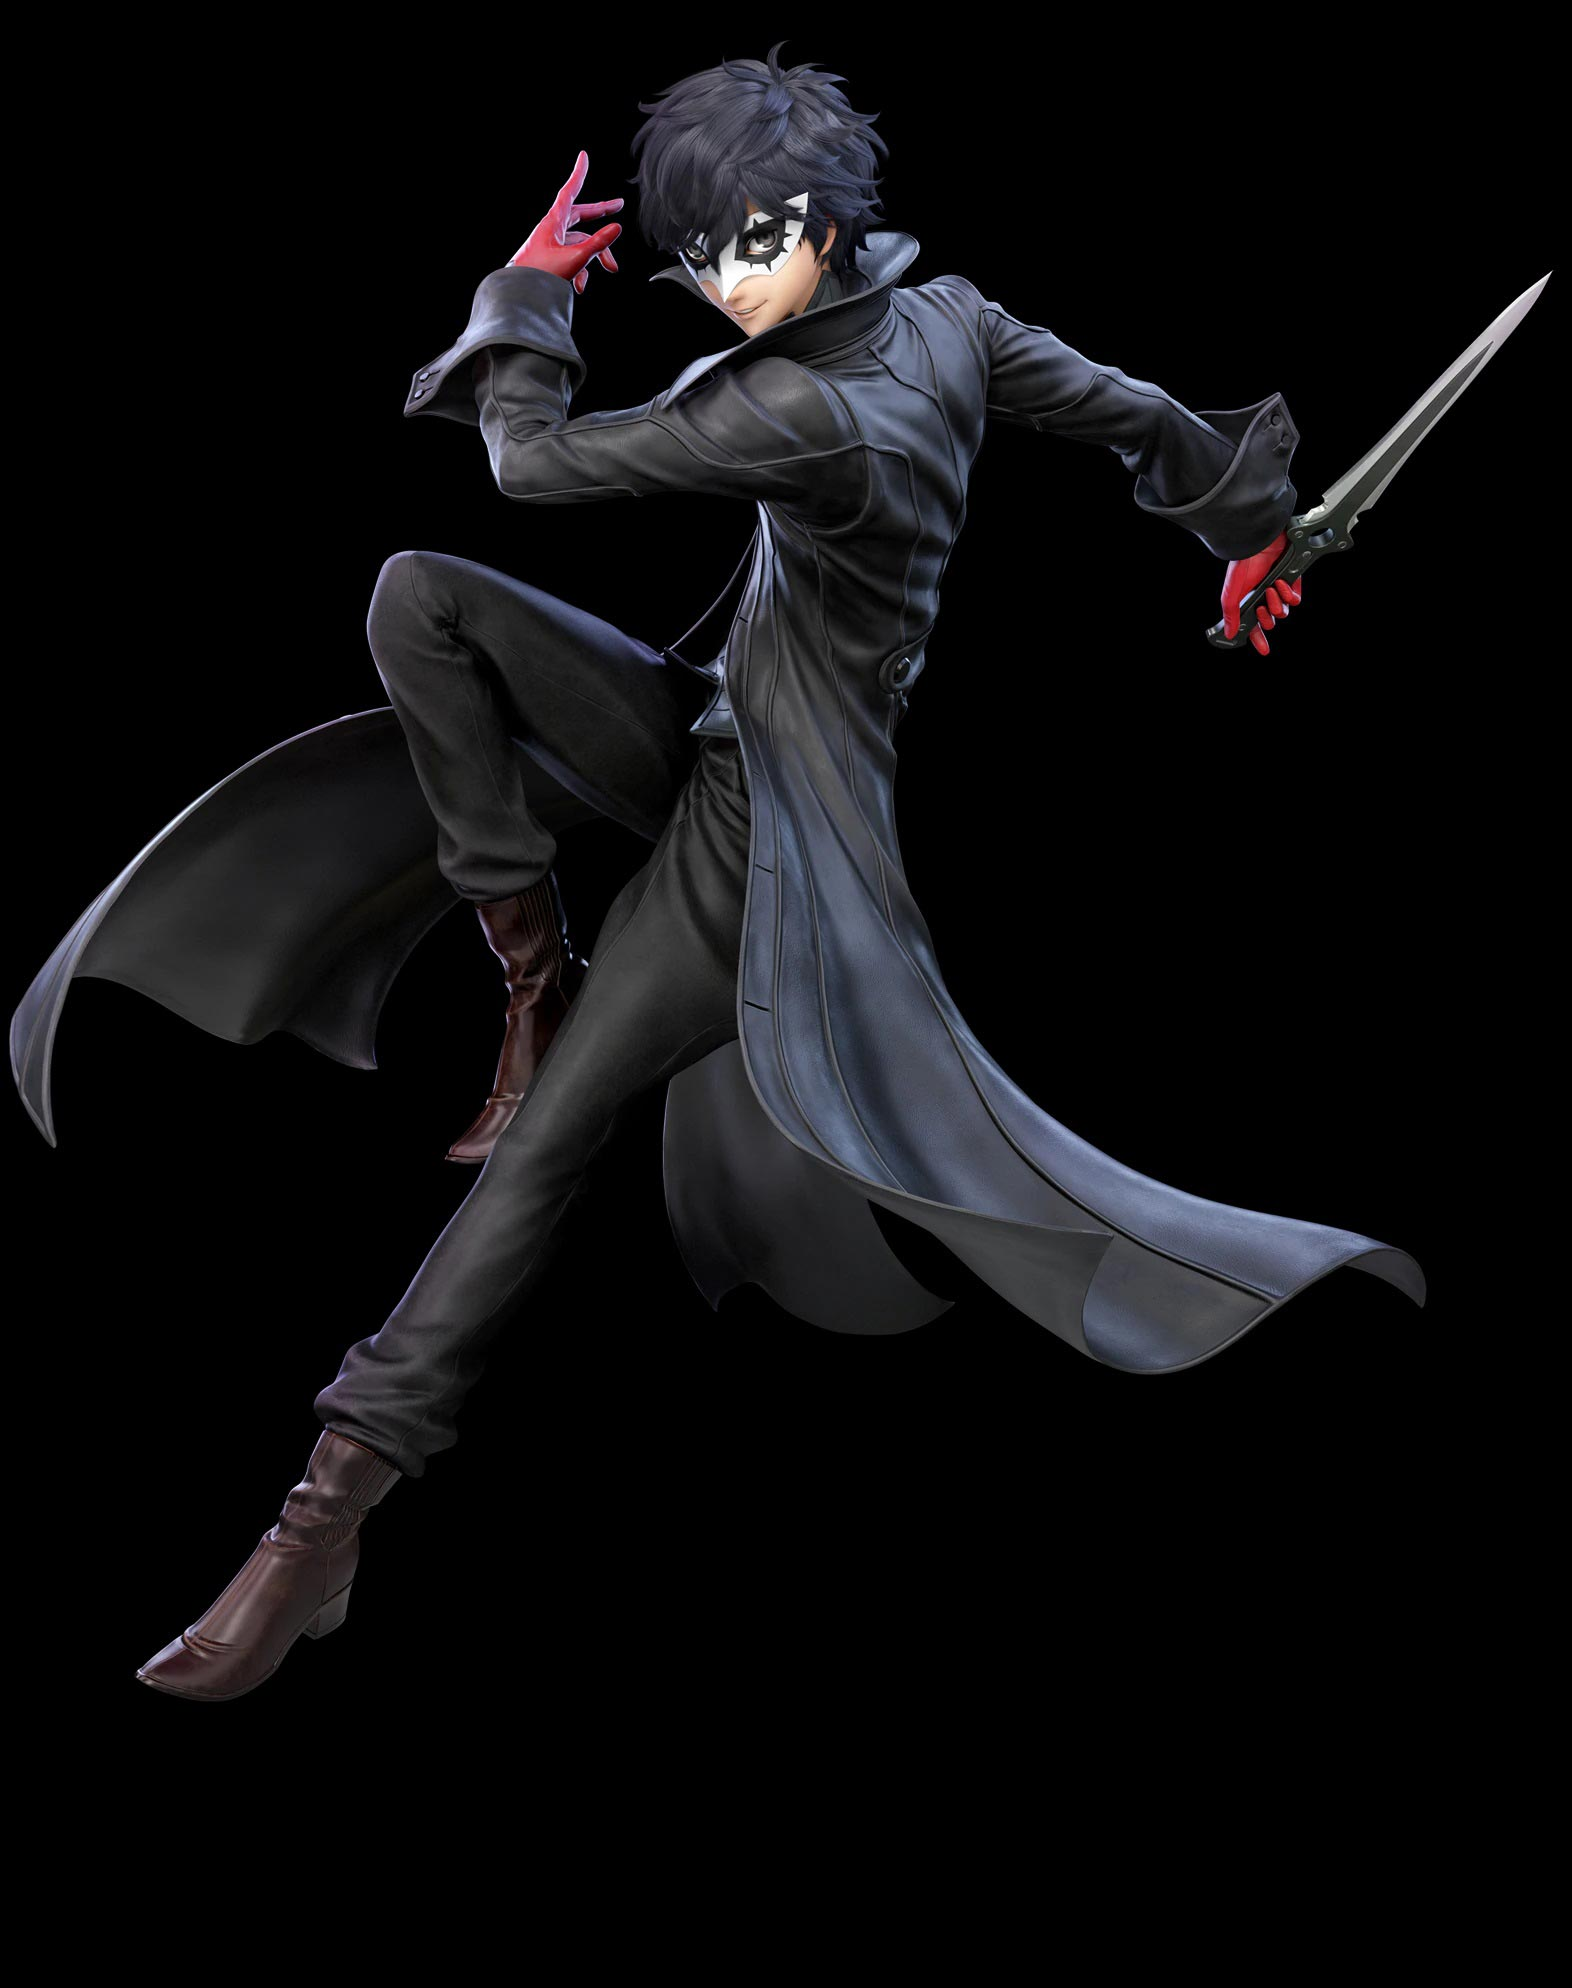 Joker's colors in Super Smash Bros  Ultimate 1 out of 8 image gallery